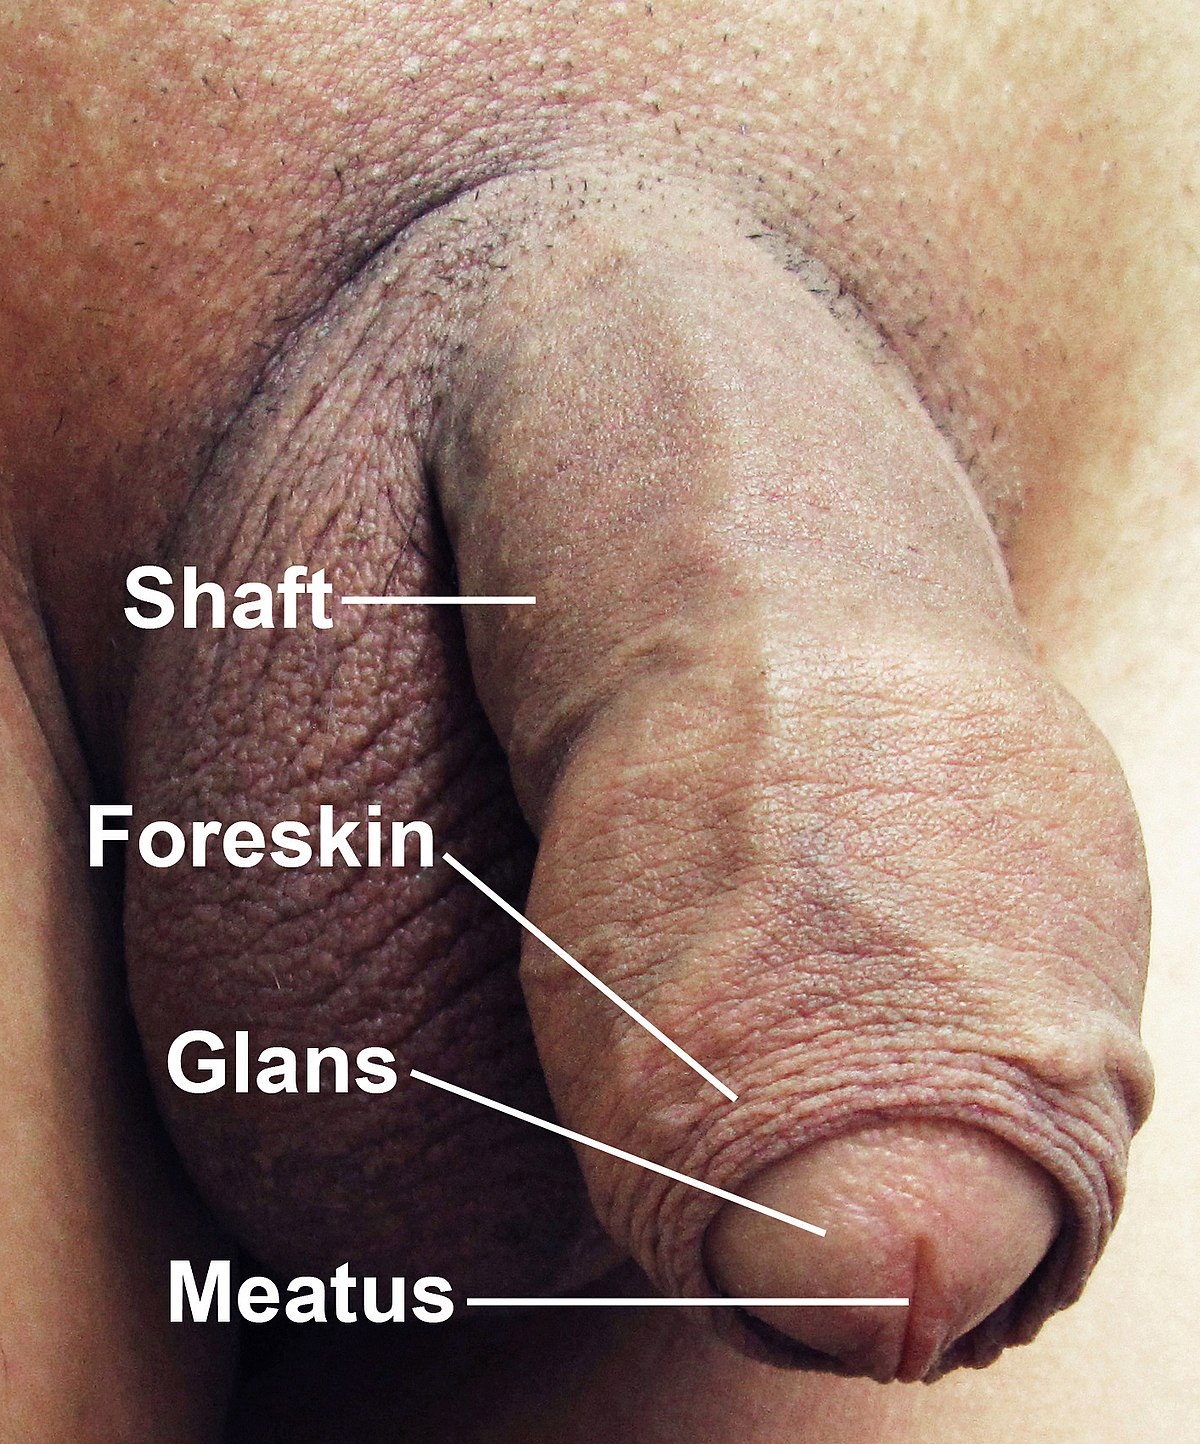 Coitus with an average penis